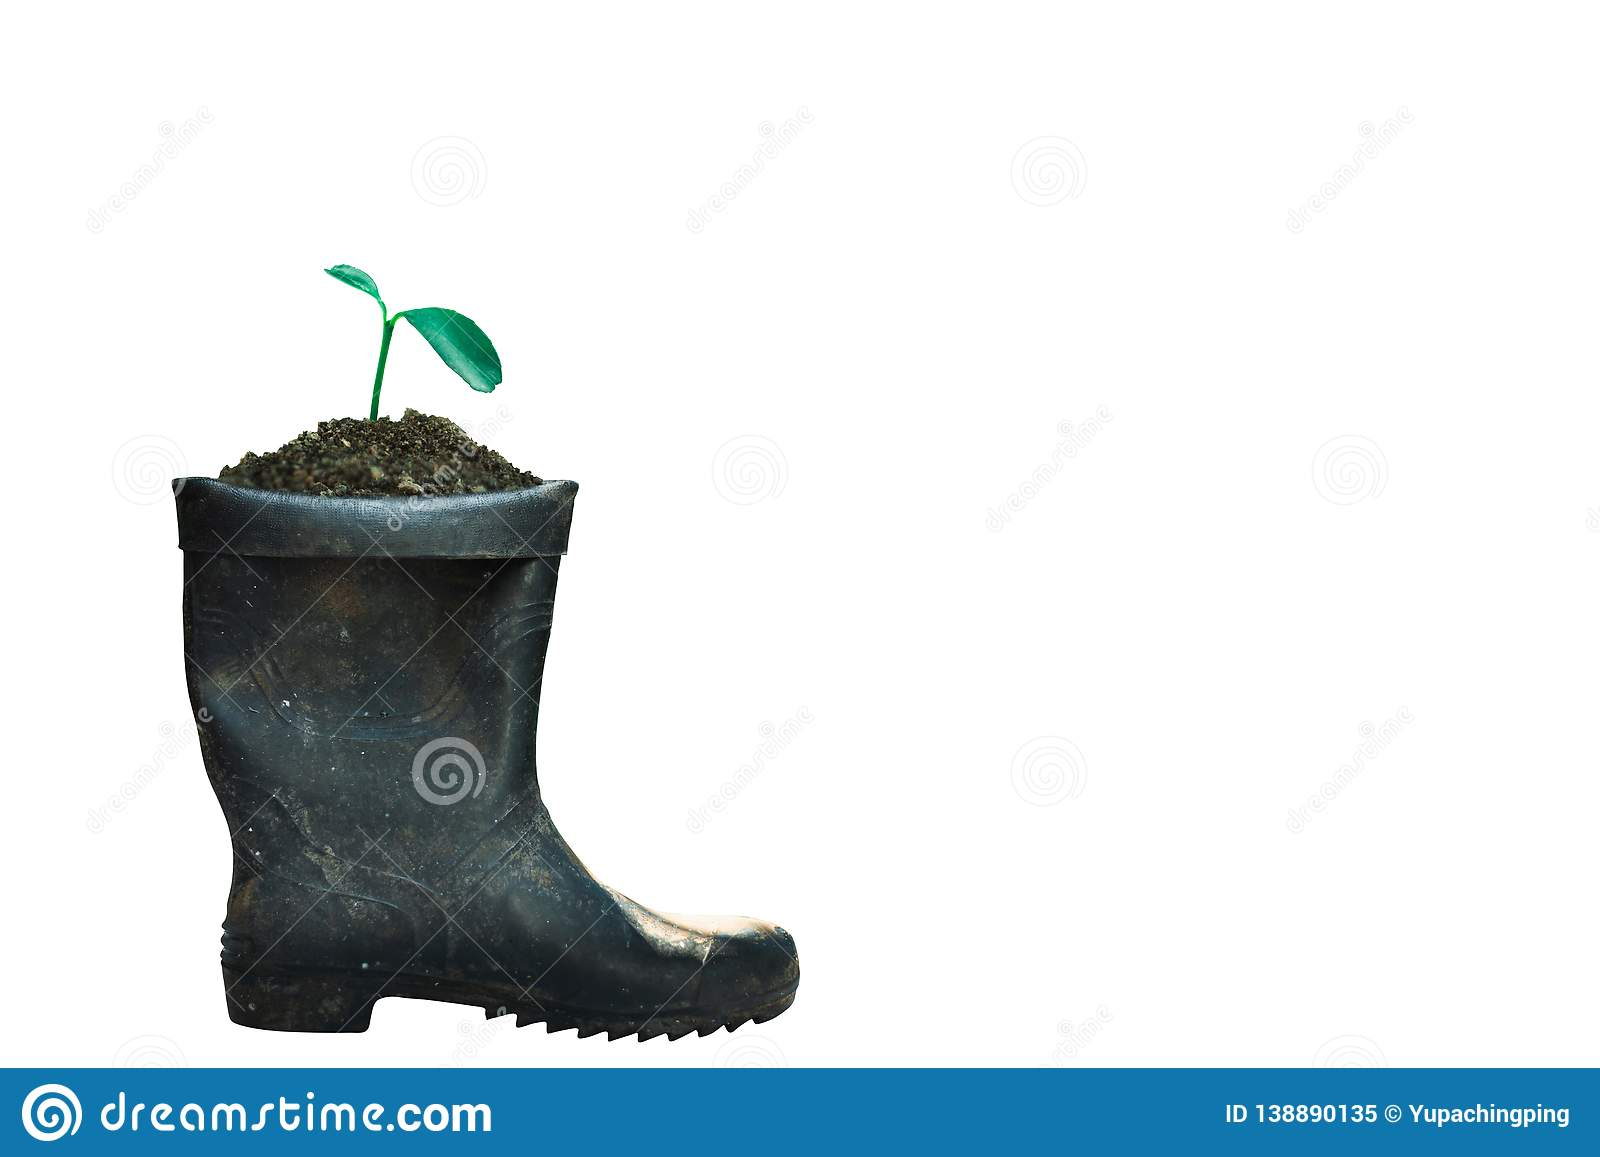 sprout growing in boot